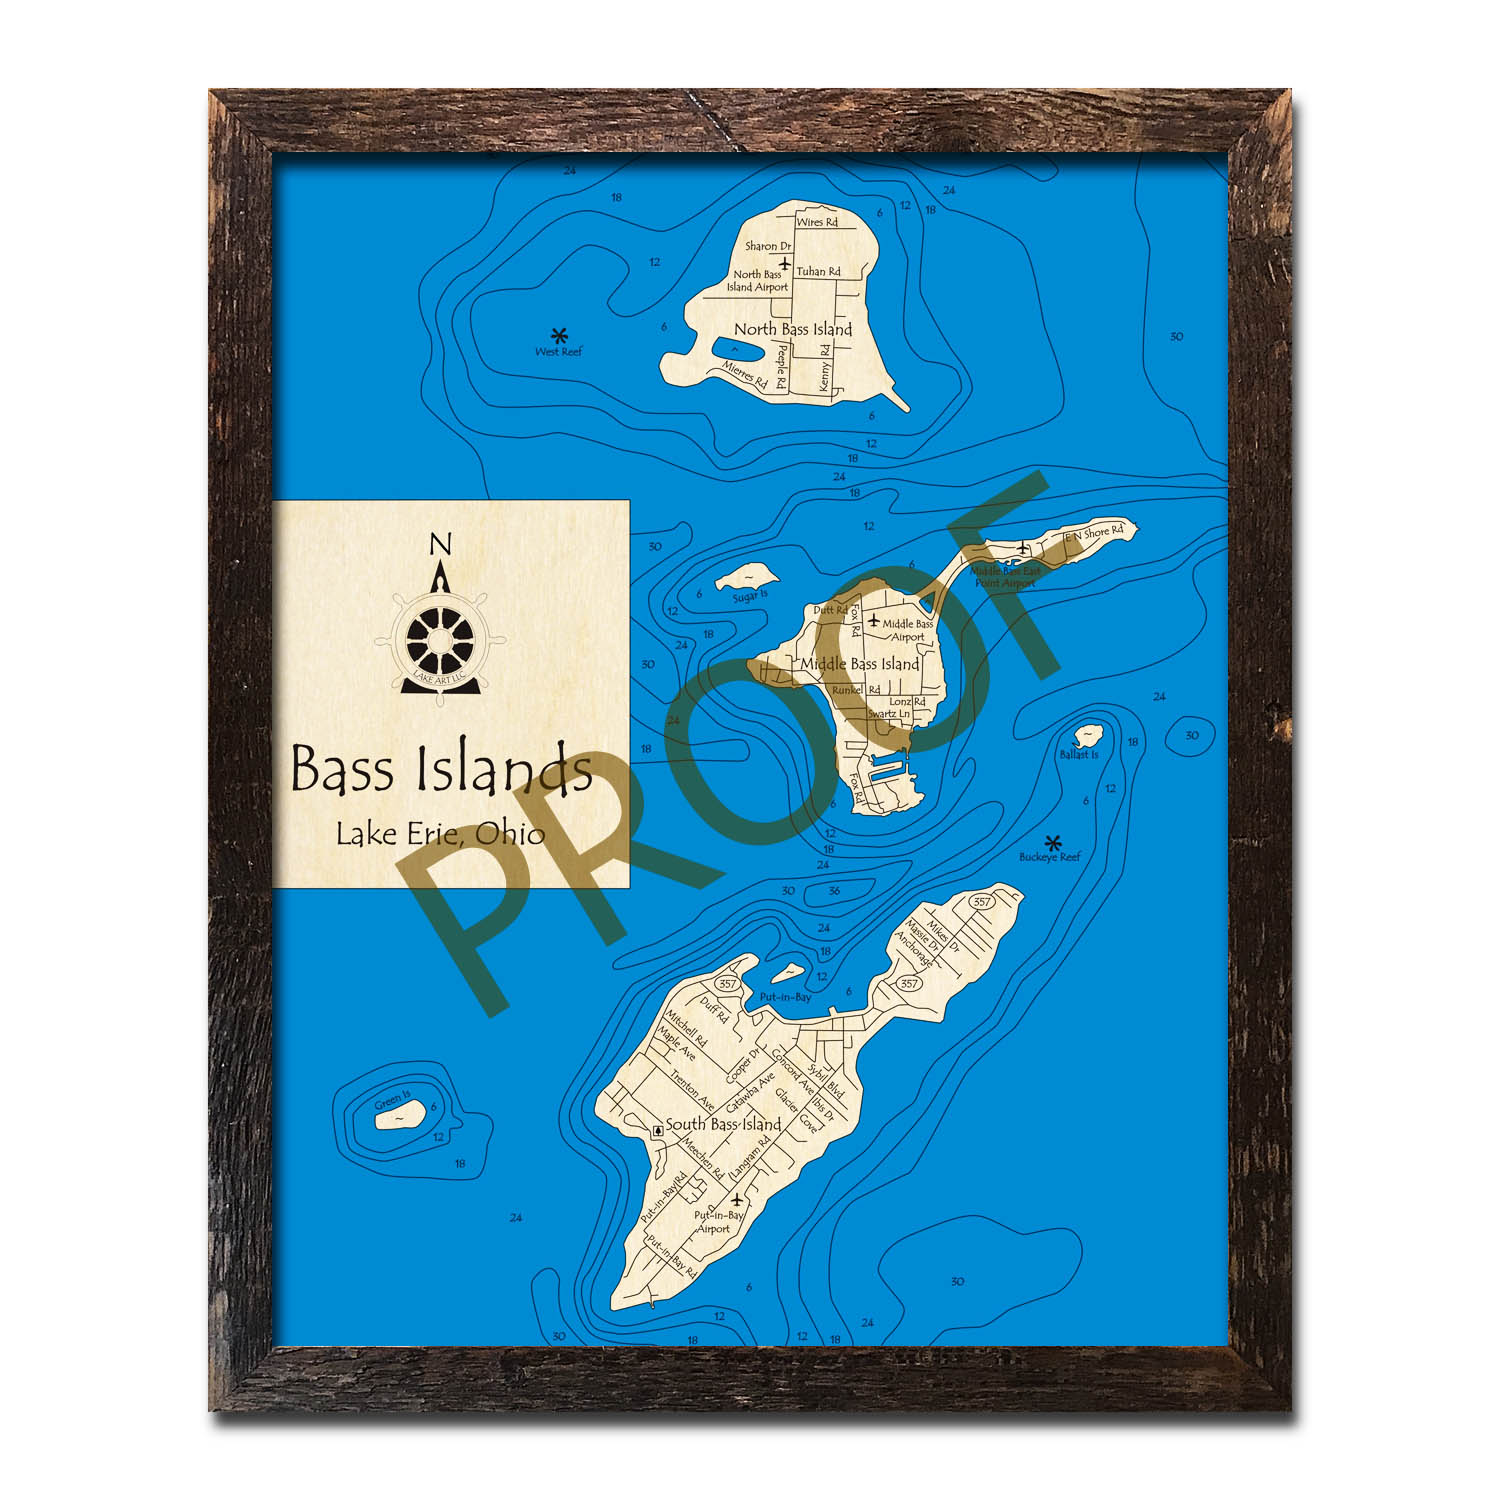 Bass Islands in Lake Erie Wooden Map